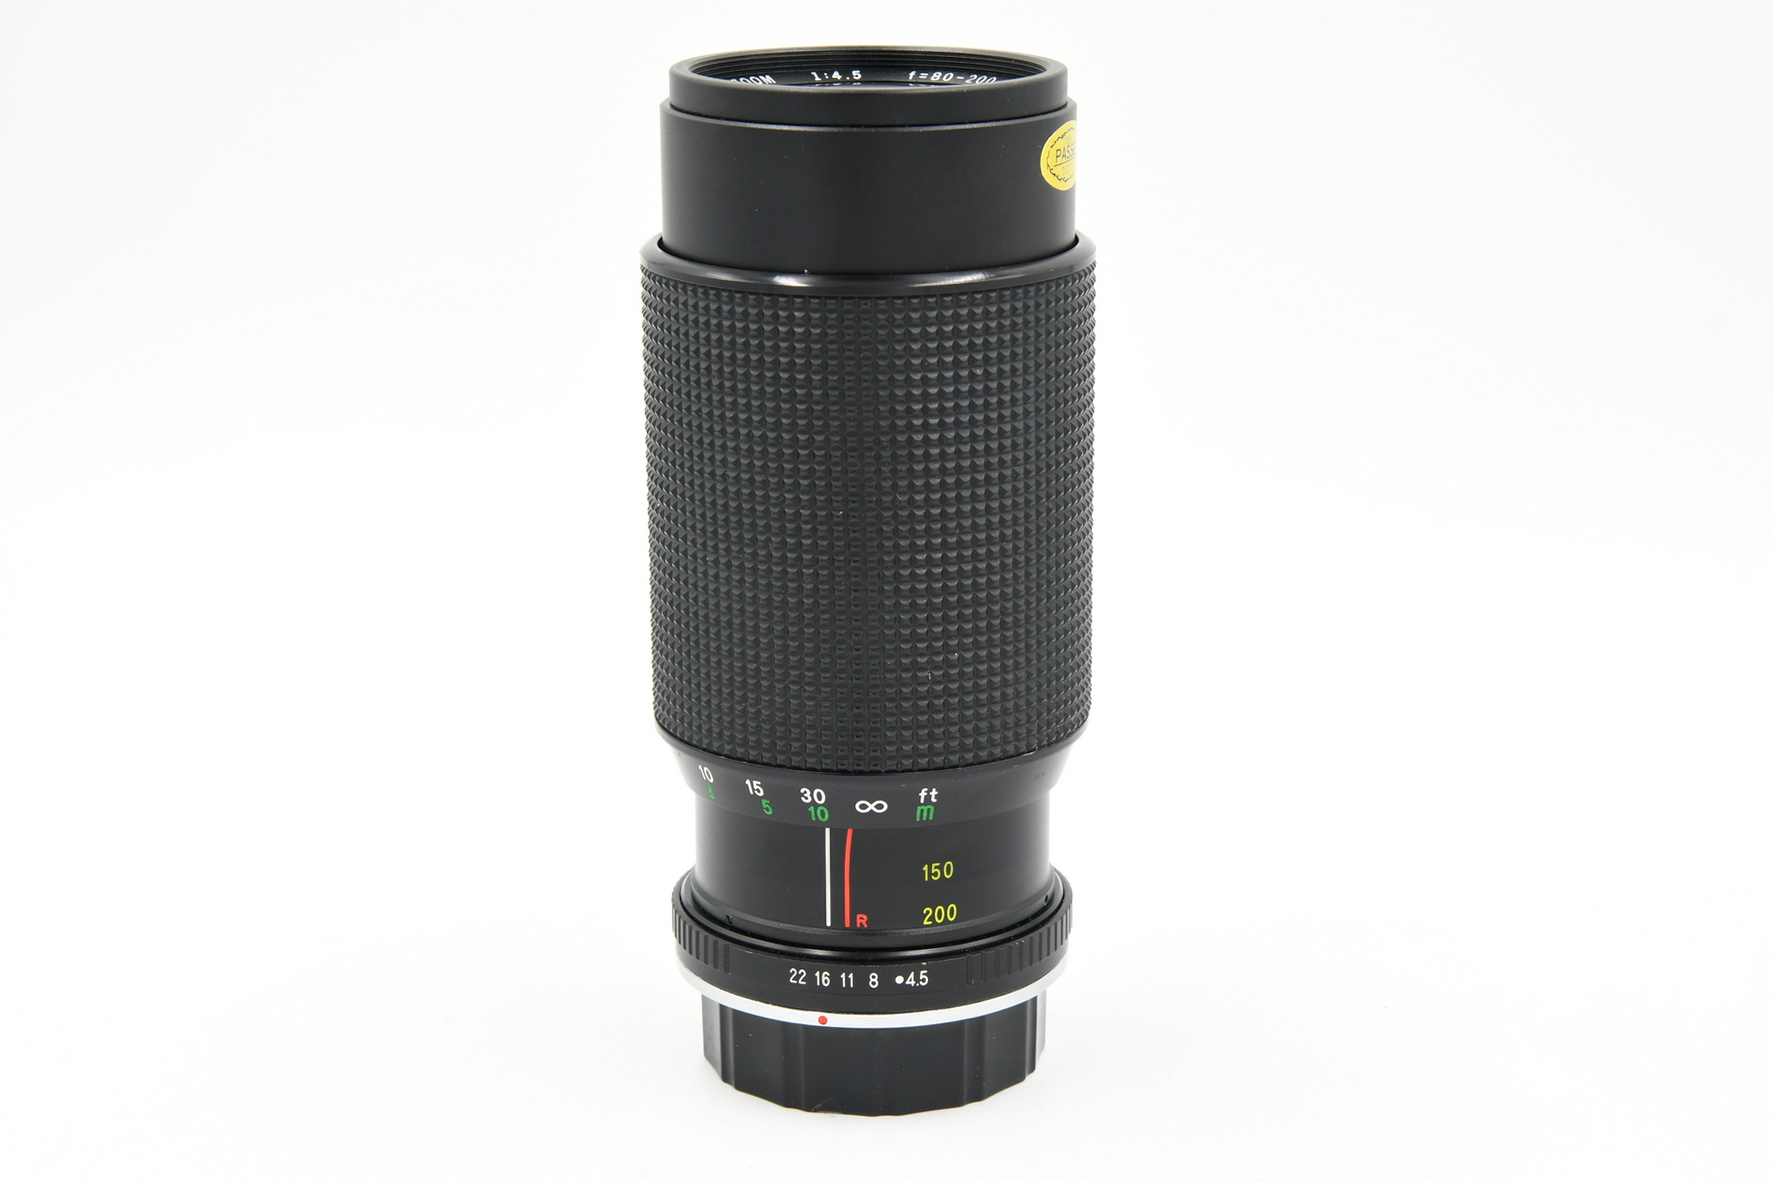 Объектив Danubia Super 80-200mm f/4.5 Macro MC for Pentax (состояние 5)